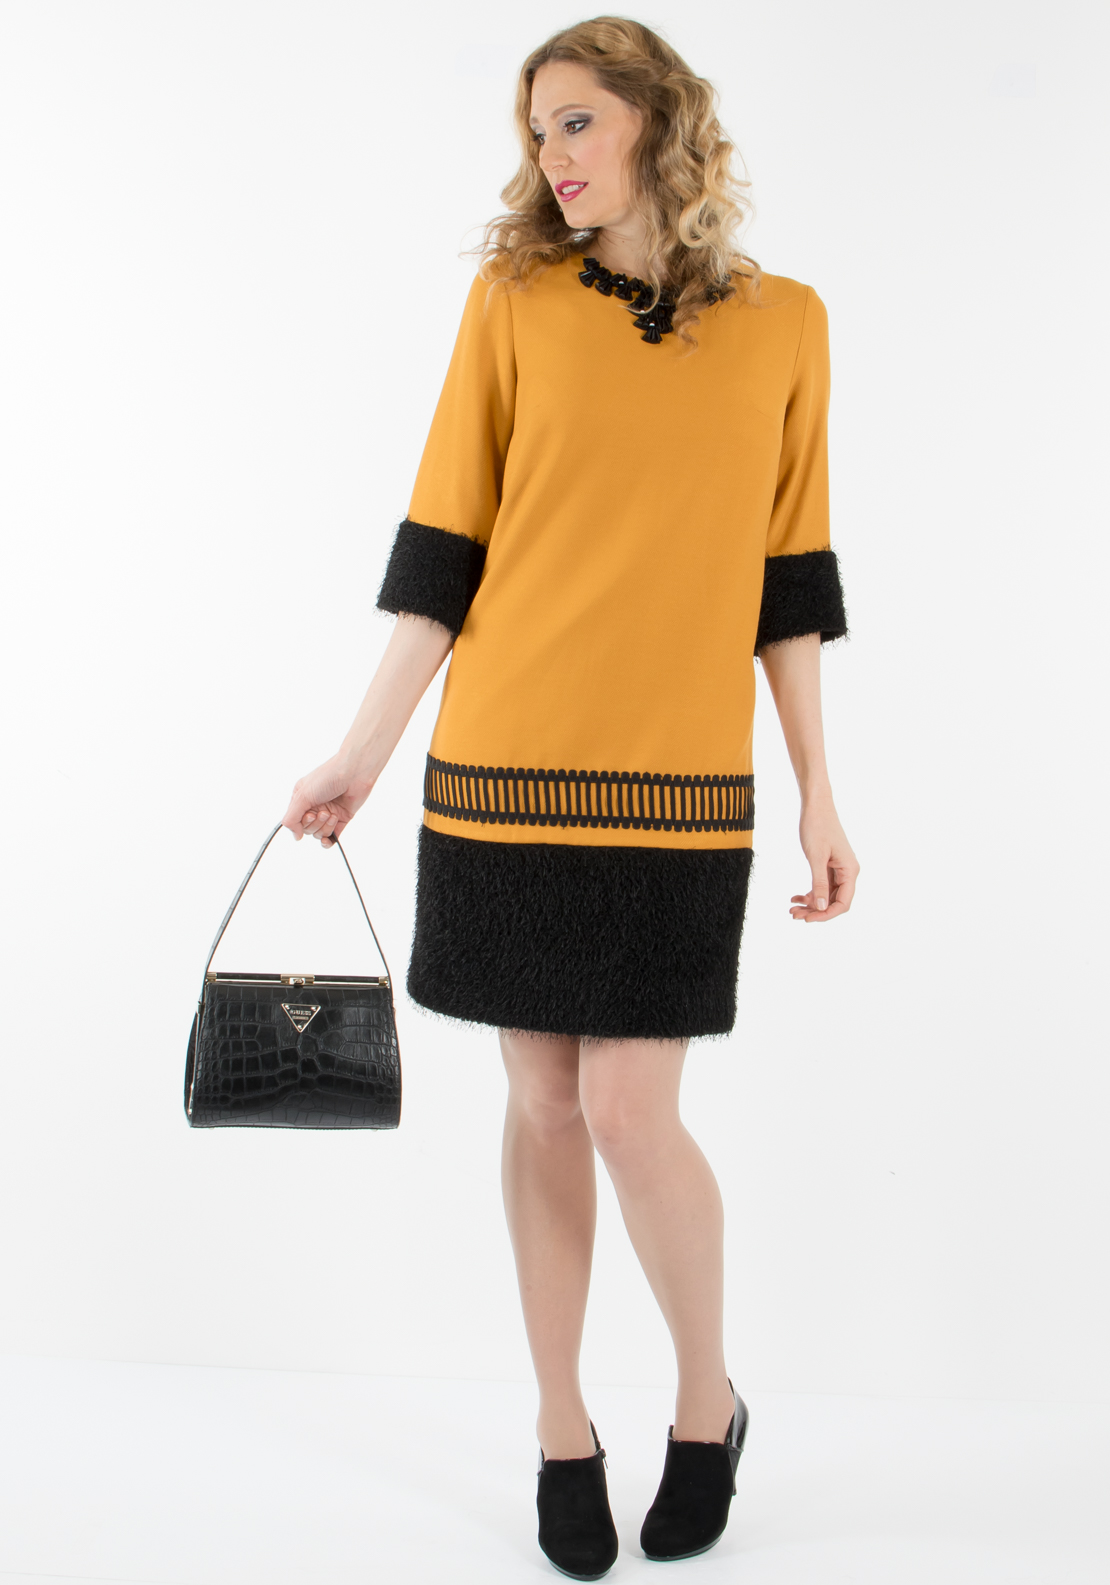 Badoo Textured Trim Cropped Sleeve Shift Dress, Mustard and Black